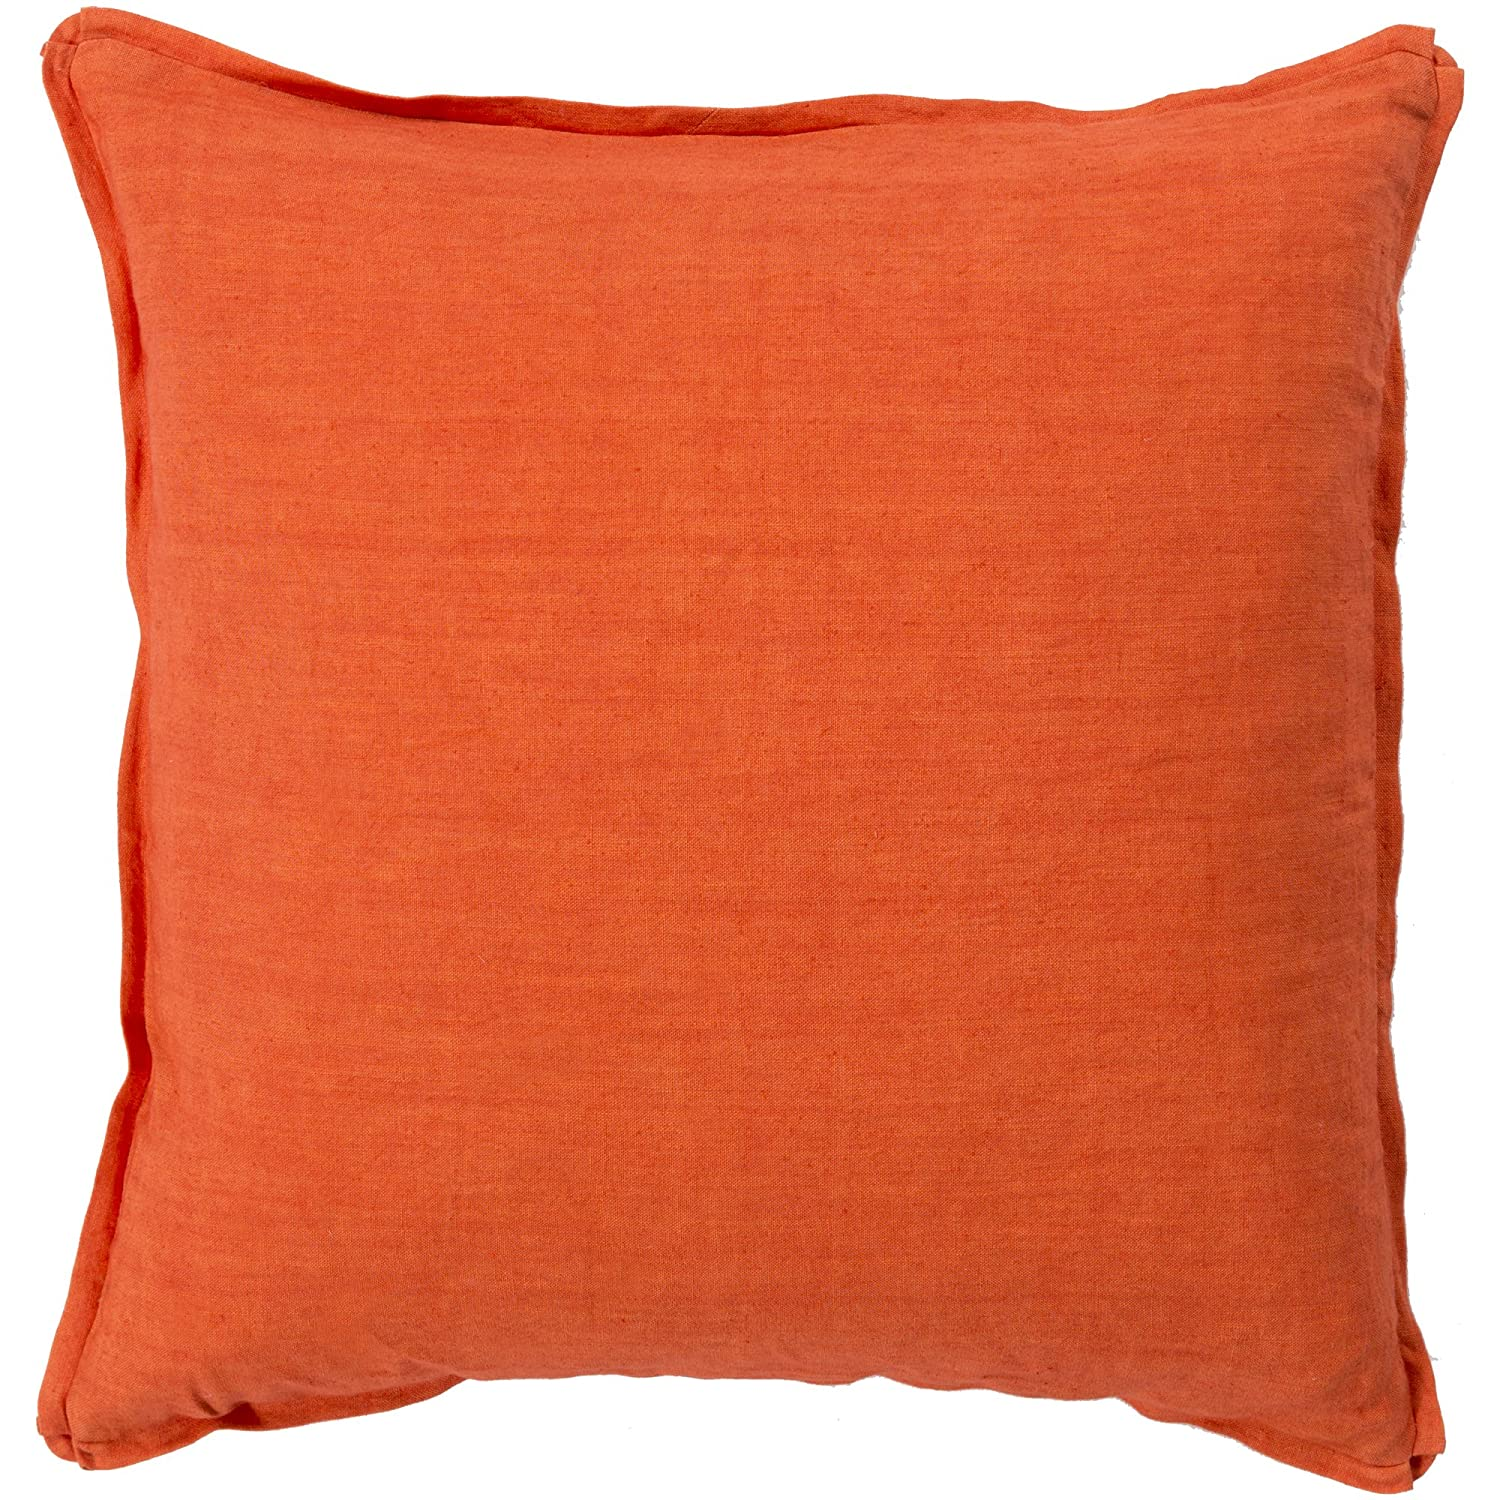 Surya Rug SL003-2222D Square Poppy Down Feathers Pillow 22 in.   B00H2KBIQ6